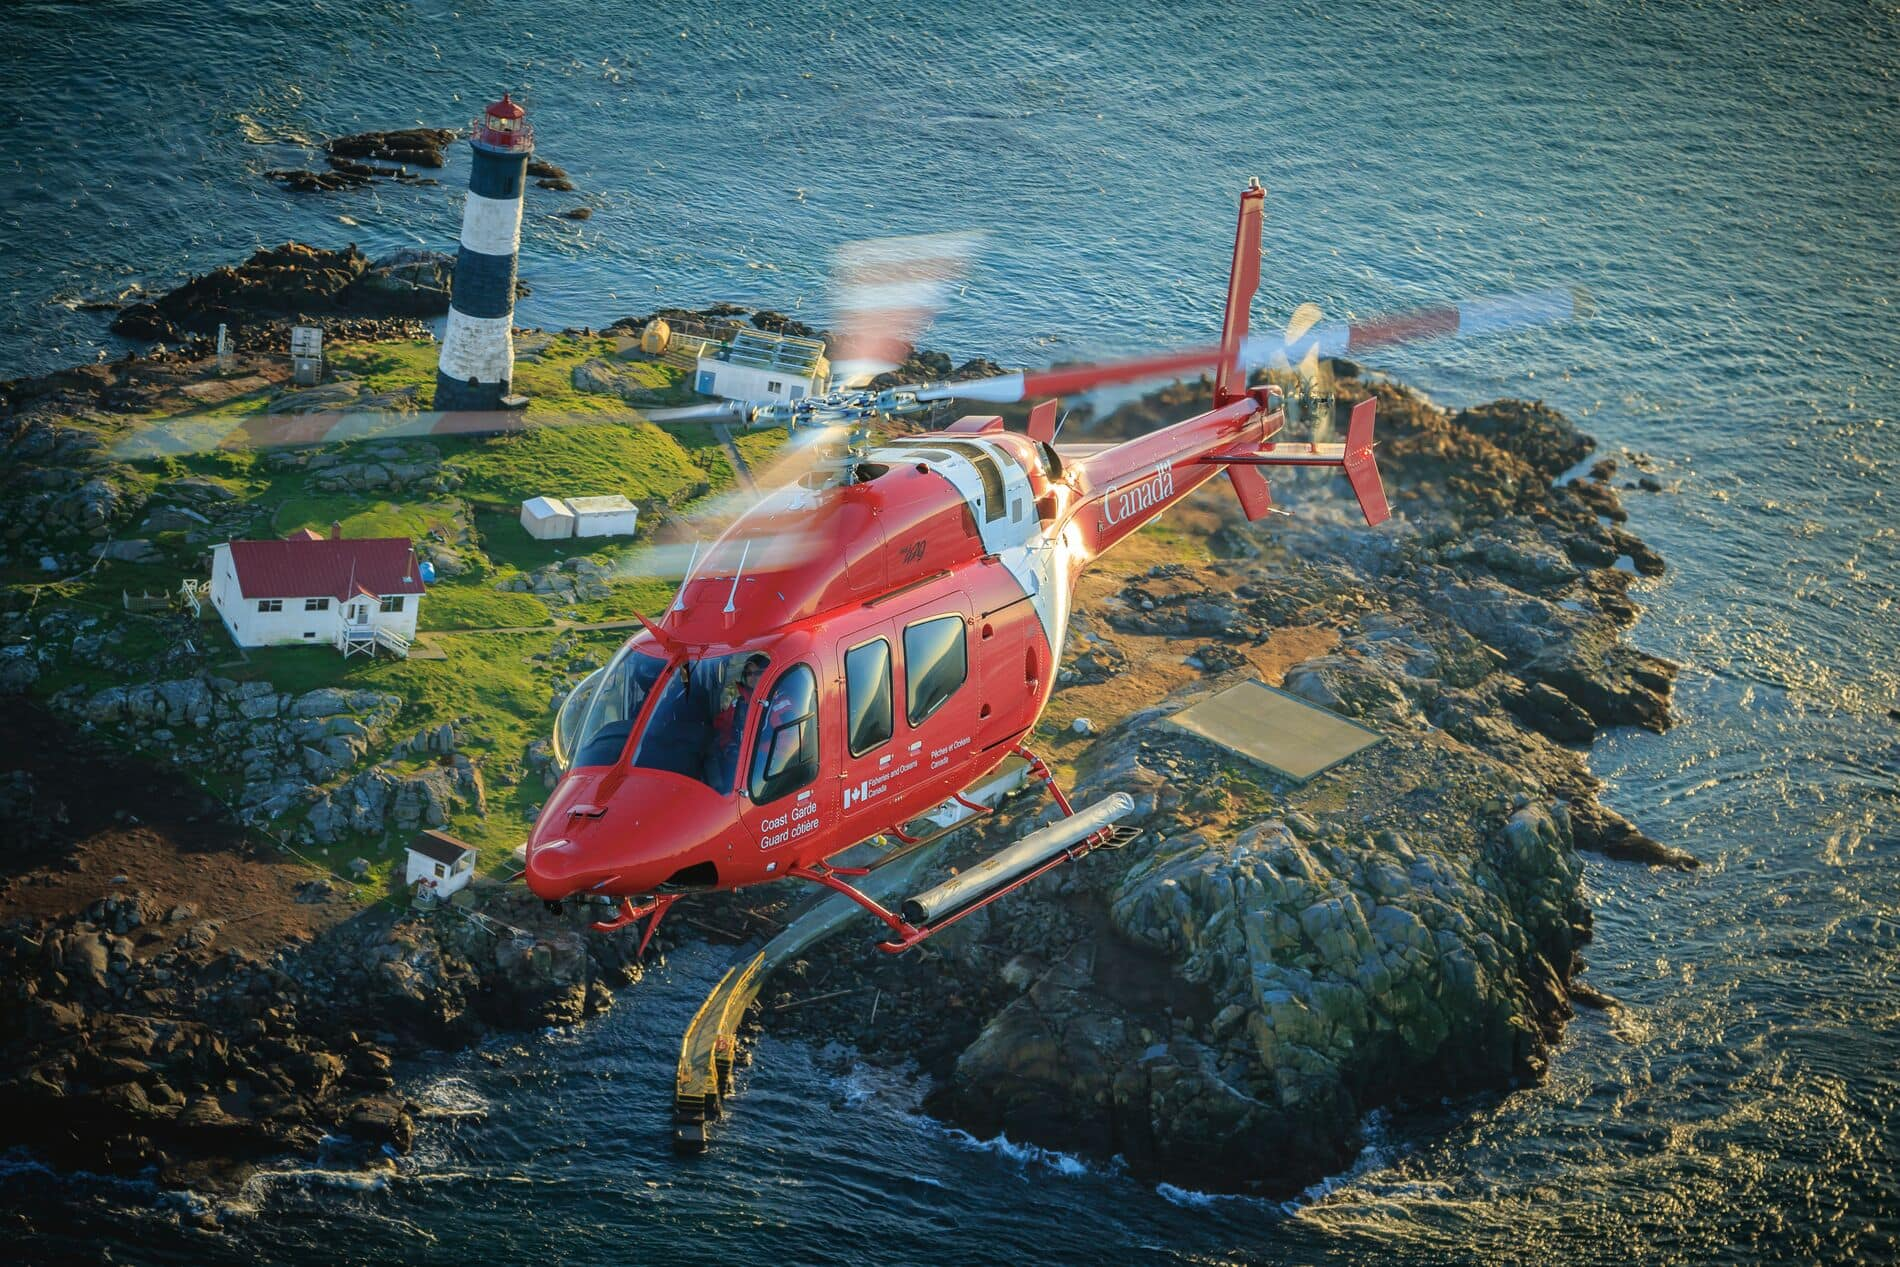 Web_Hero-05-MAY_HERO_429_Canadian-Coast-Guard_158-15-406_2015_layered